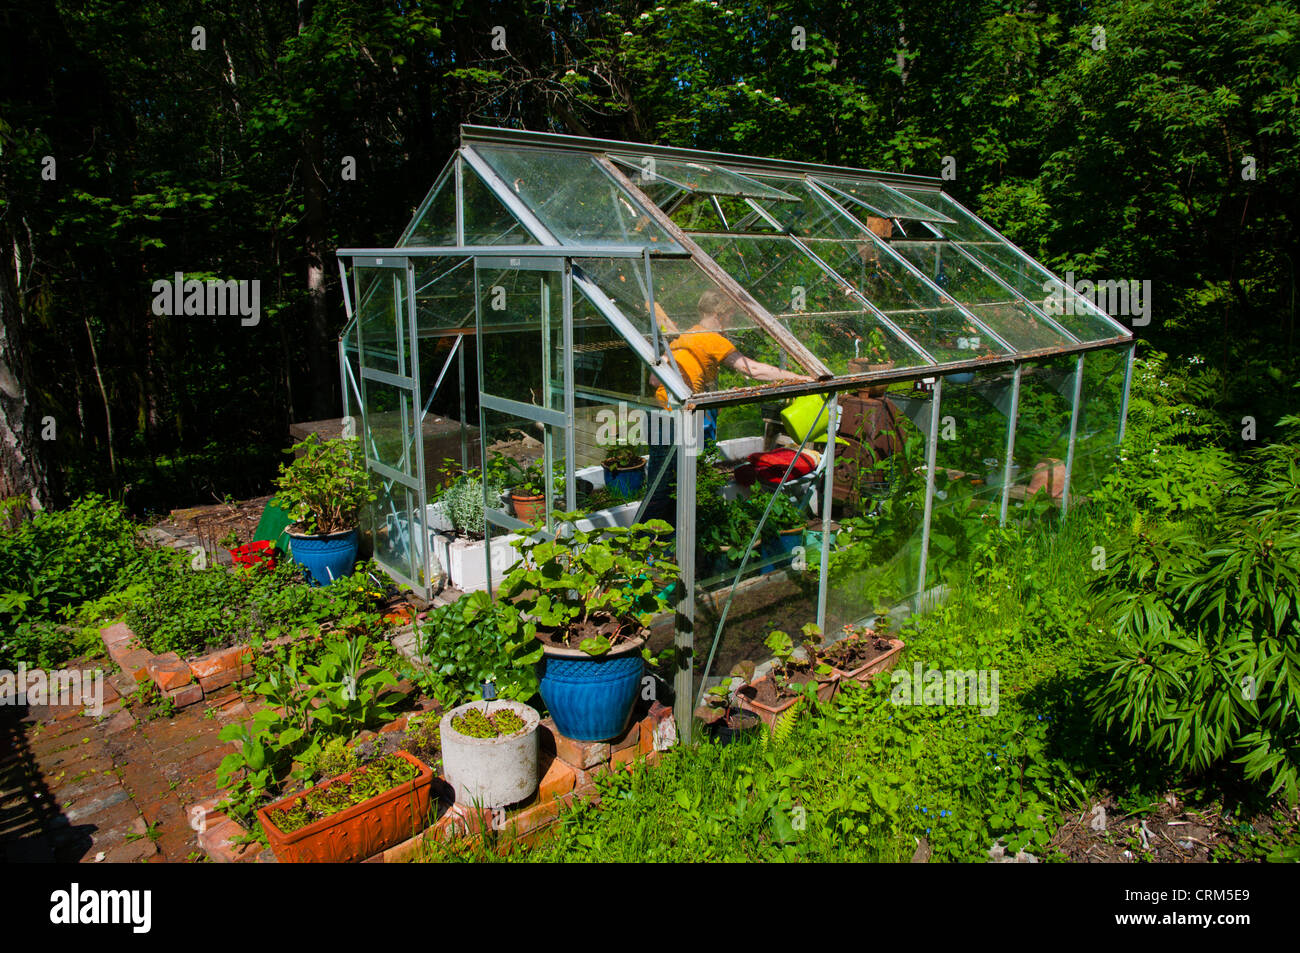 Greenhouse at a private garden plot field Porvoo Uusimaa province Finland northern Europe - Stock Image